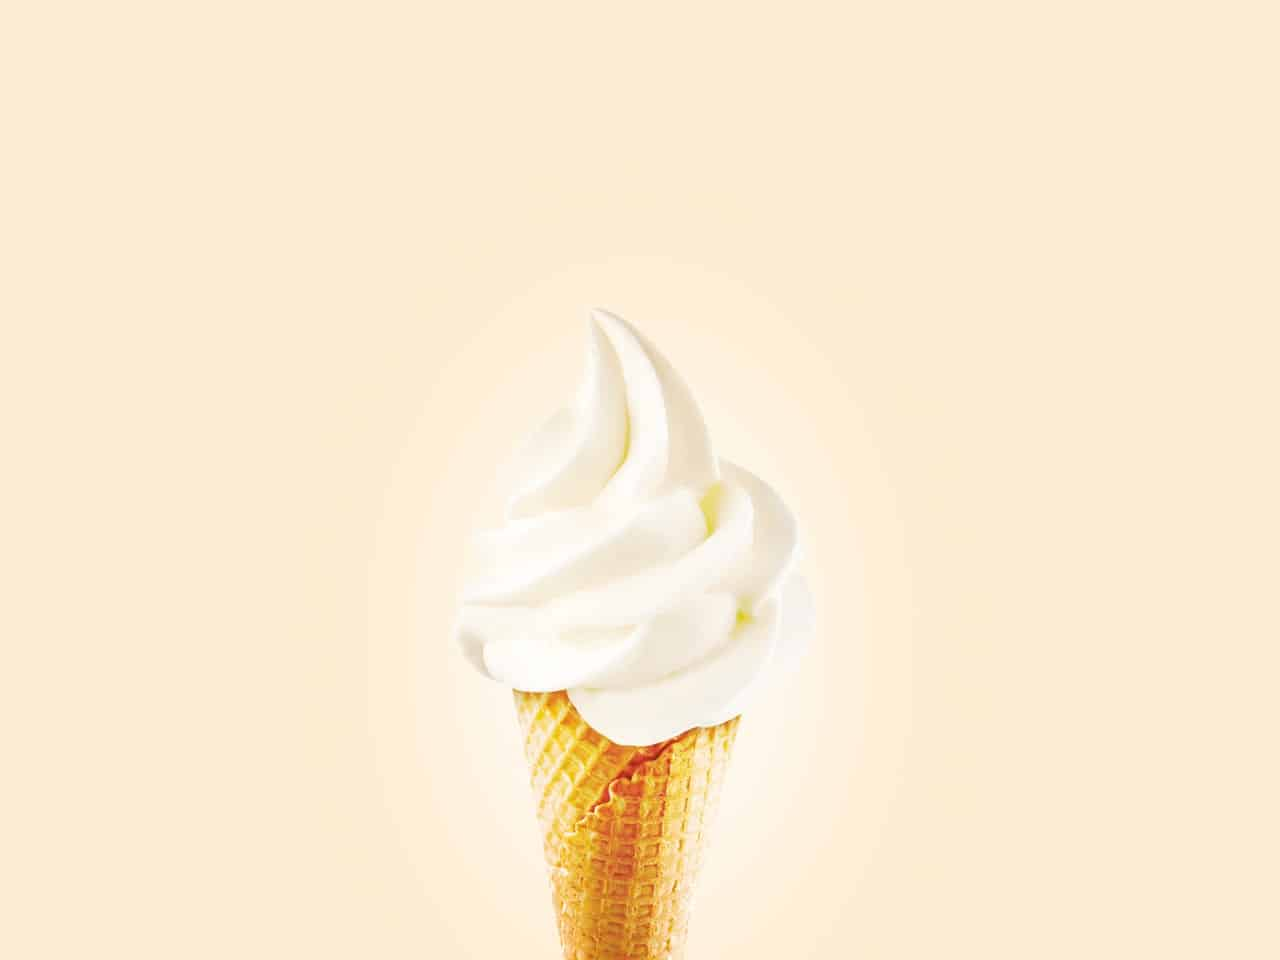 23andme research on genes and preference of ice cream flavor